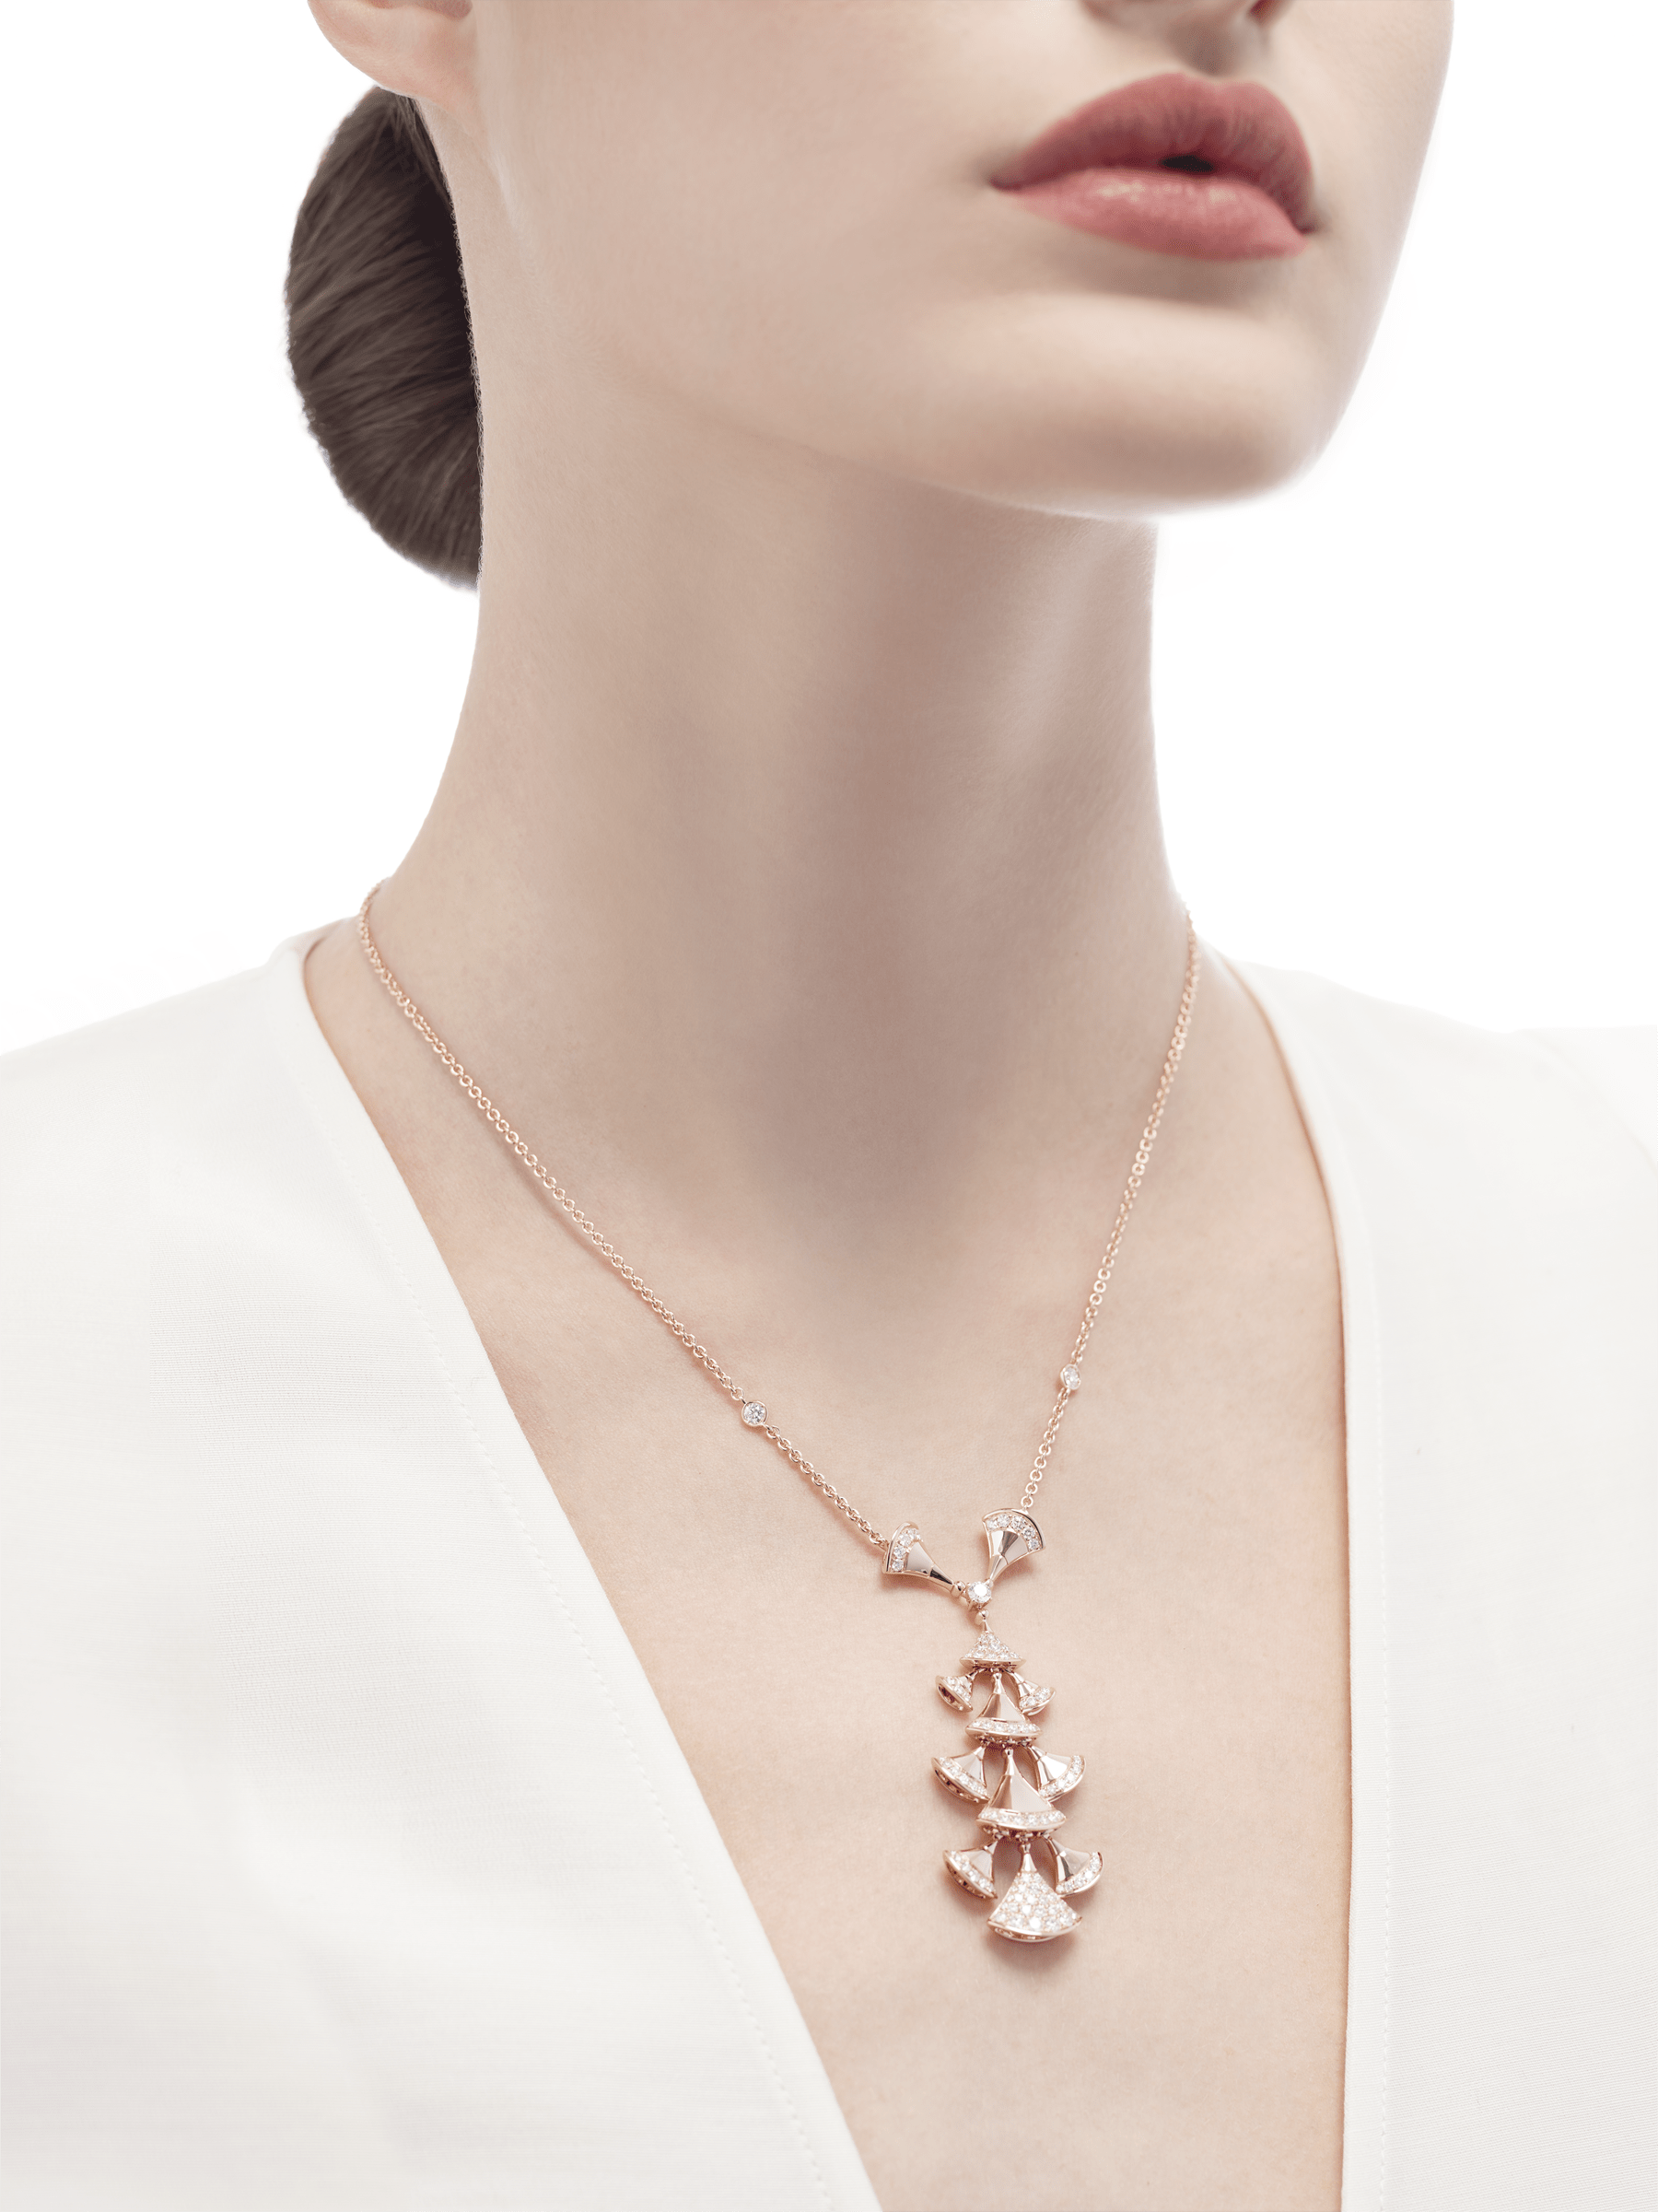 DIVAS' DREAM necklace in 18 kt rose gold set with diamonds and pavé diamonds. 352607 image 4